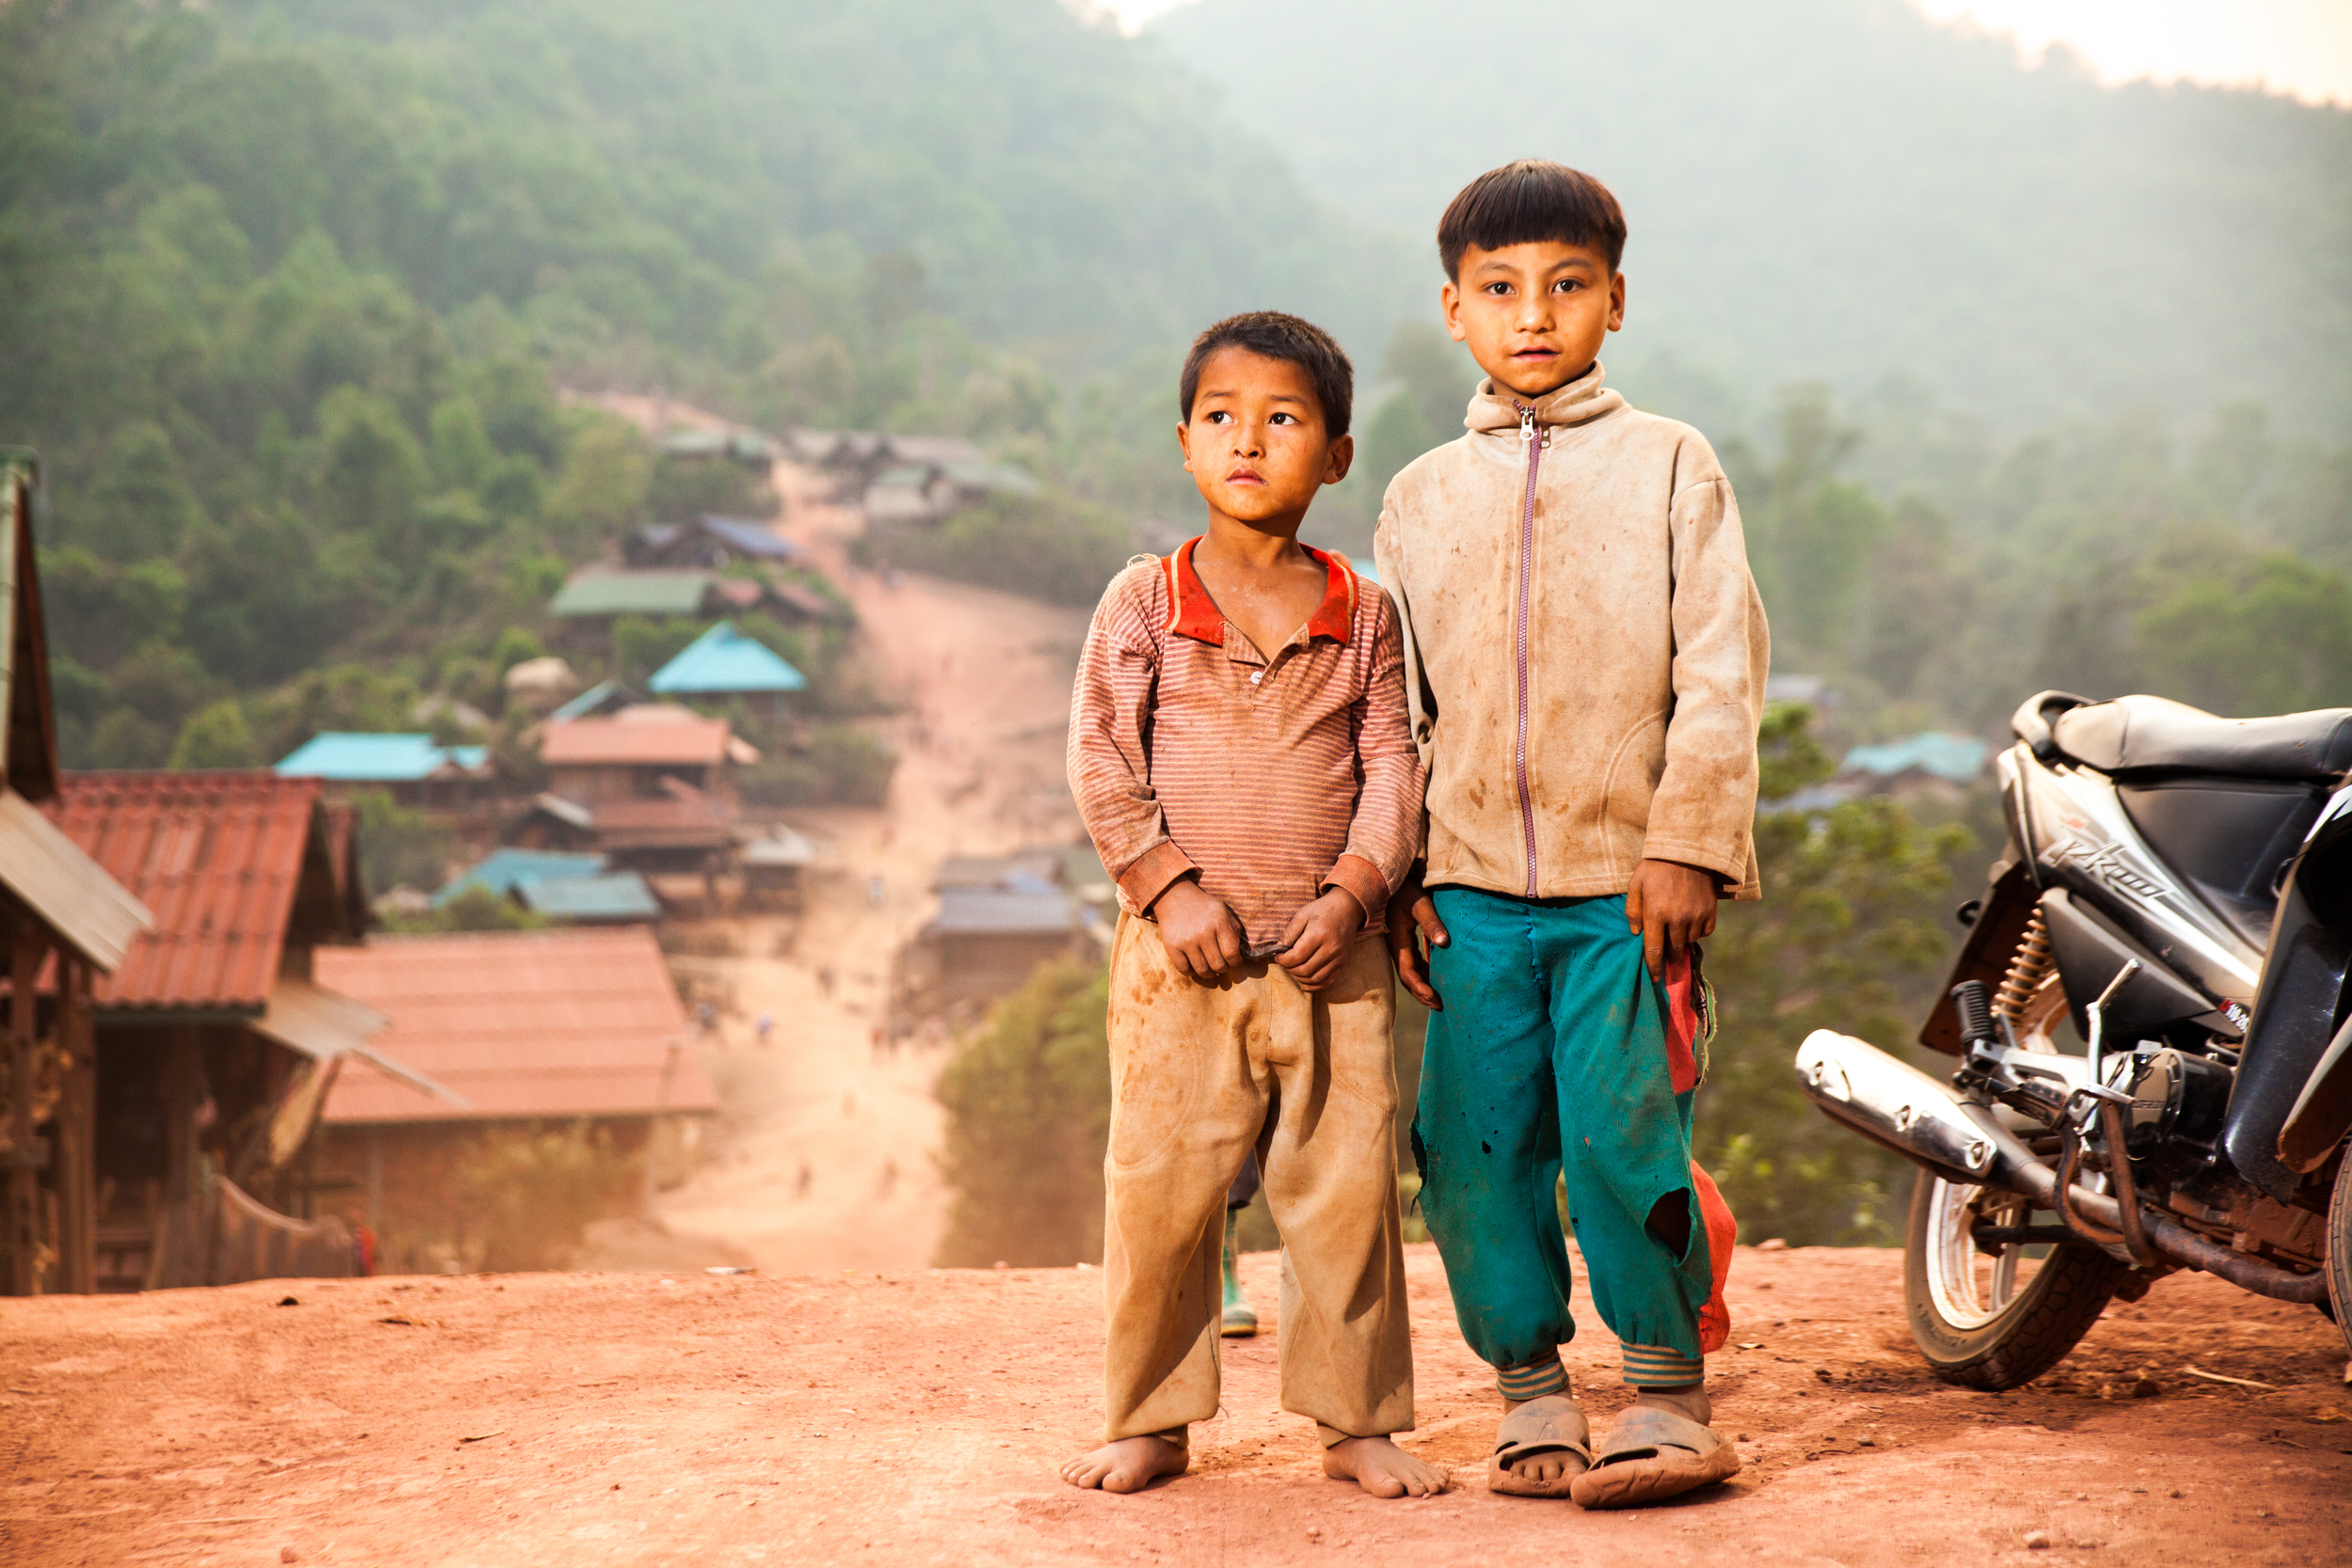 Children in northern Laos.